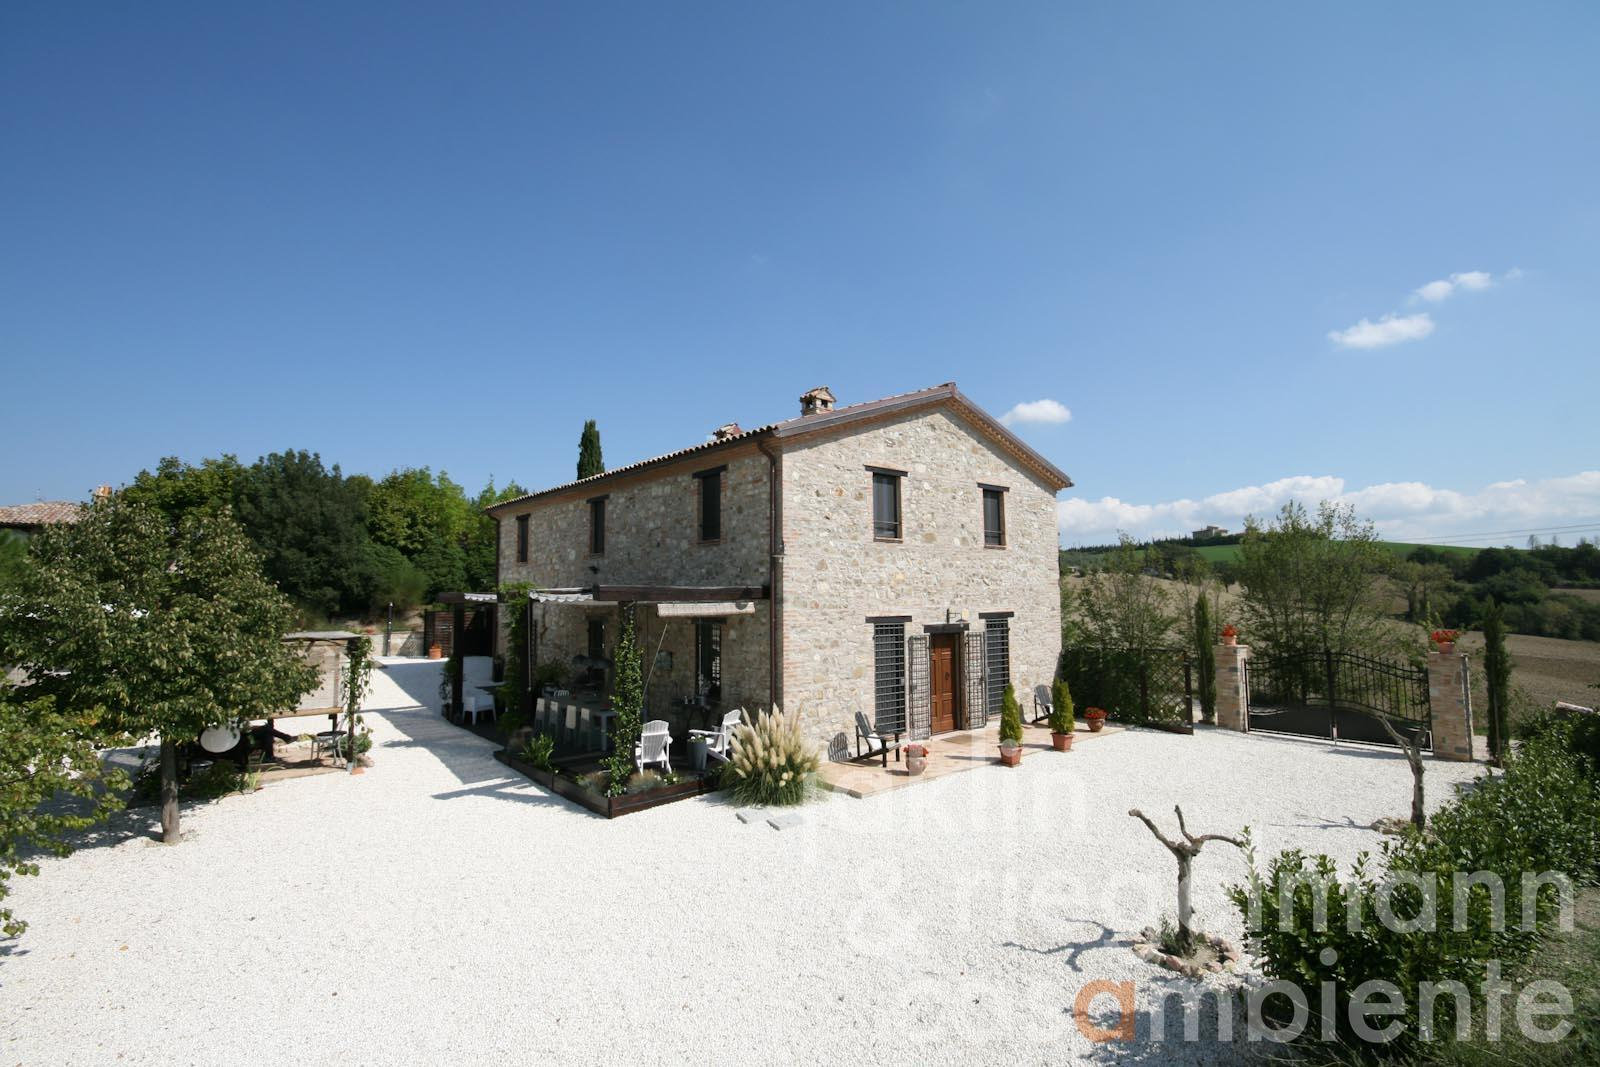 The luxurious country house close to Todi in Umbria for sale with annexes and pool